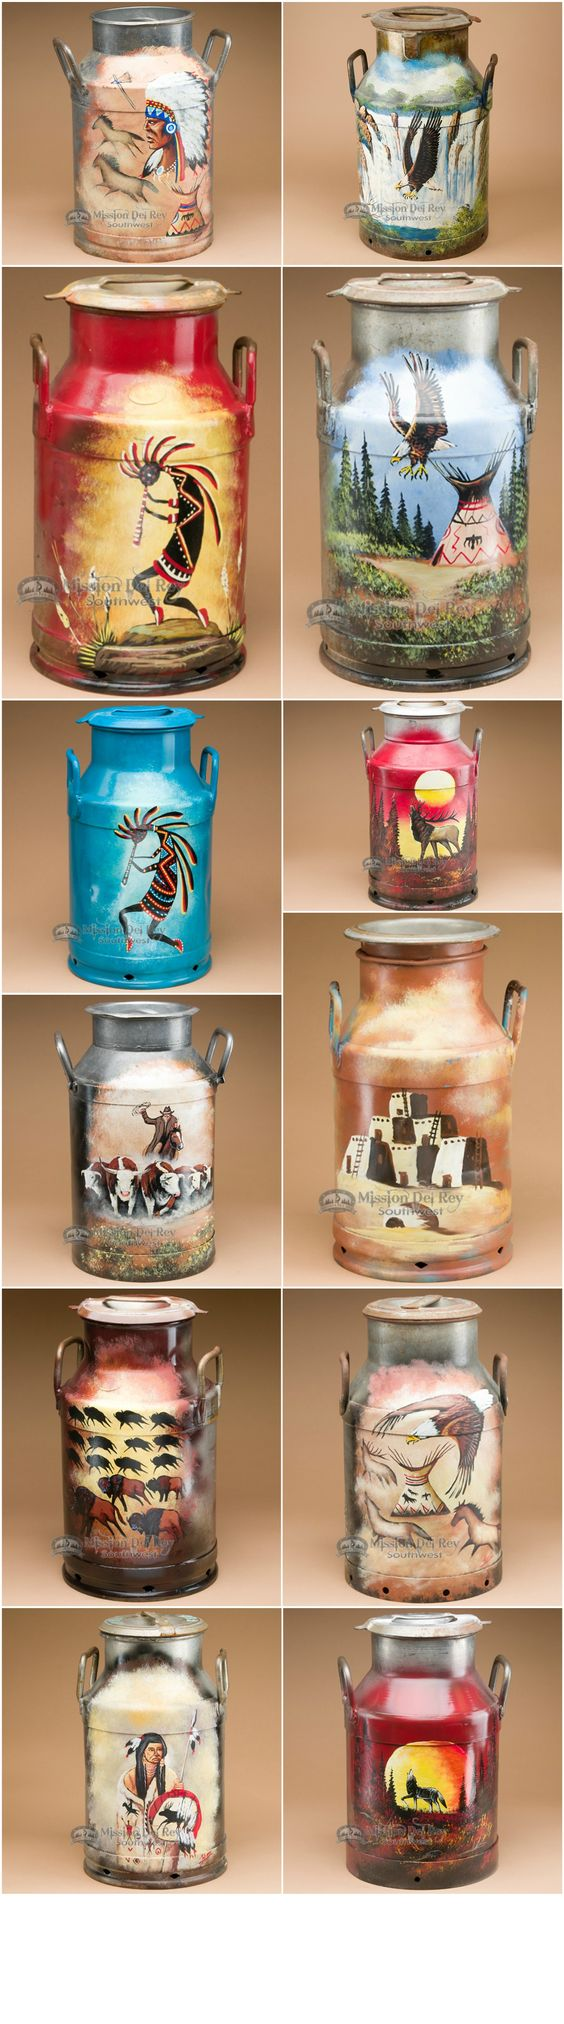 Using painted southwestern scenes is a great way to add rustic, southwest style to your home.  Place one of our painted milk cans in a rustic kitchen or living room to instantly add a southwestern touch to your home.  Pair these with other southwest decor like western bedding, southwestern pillows, Native American handcrafts and more to tie the look together. See more at http://www.missiondelrey.com/southwestern-painted-milk-cans/